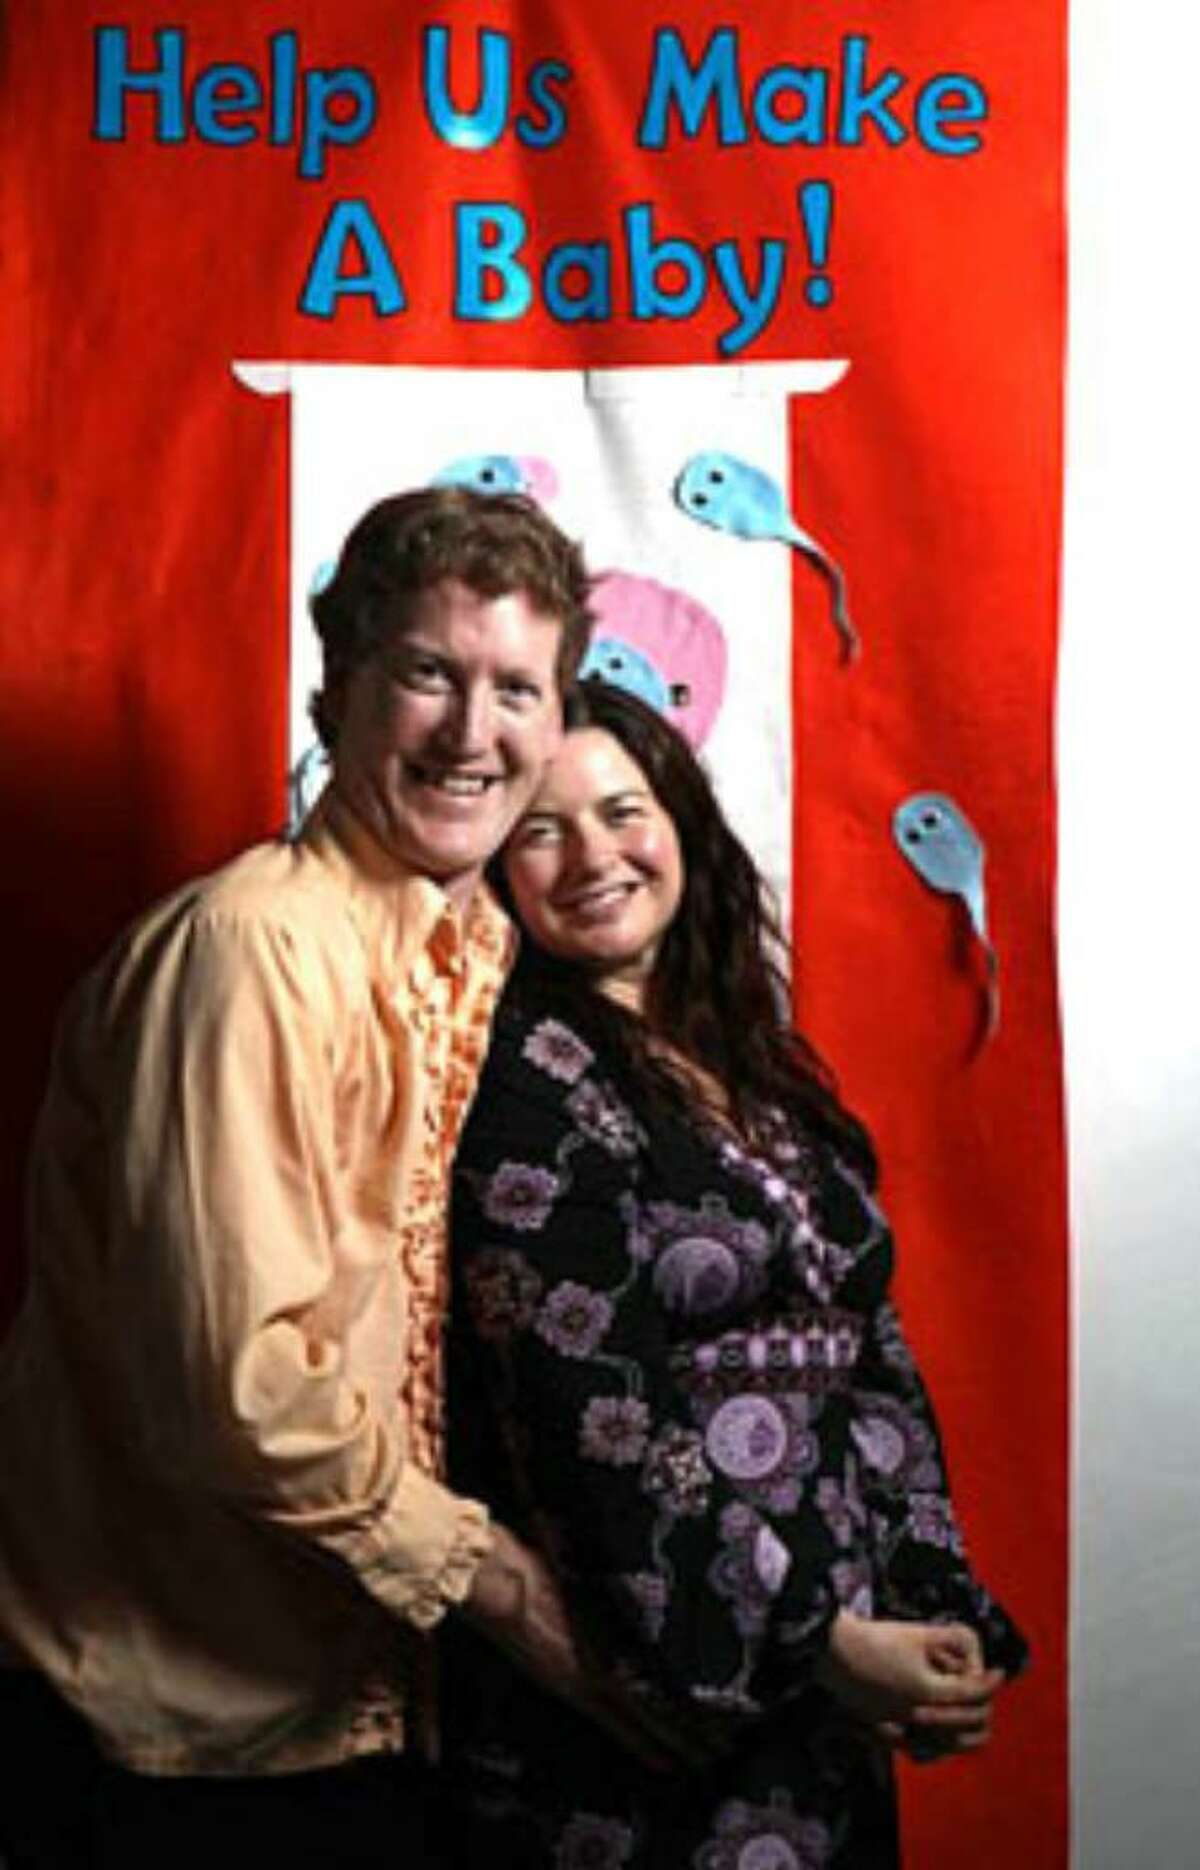 Brian and Molly Walsh host a party in their San Francisco home to raise funds for in-vitro fertilization.